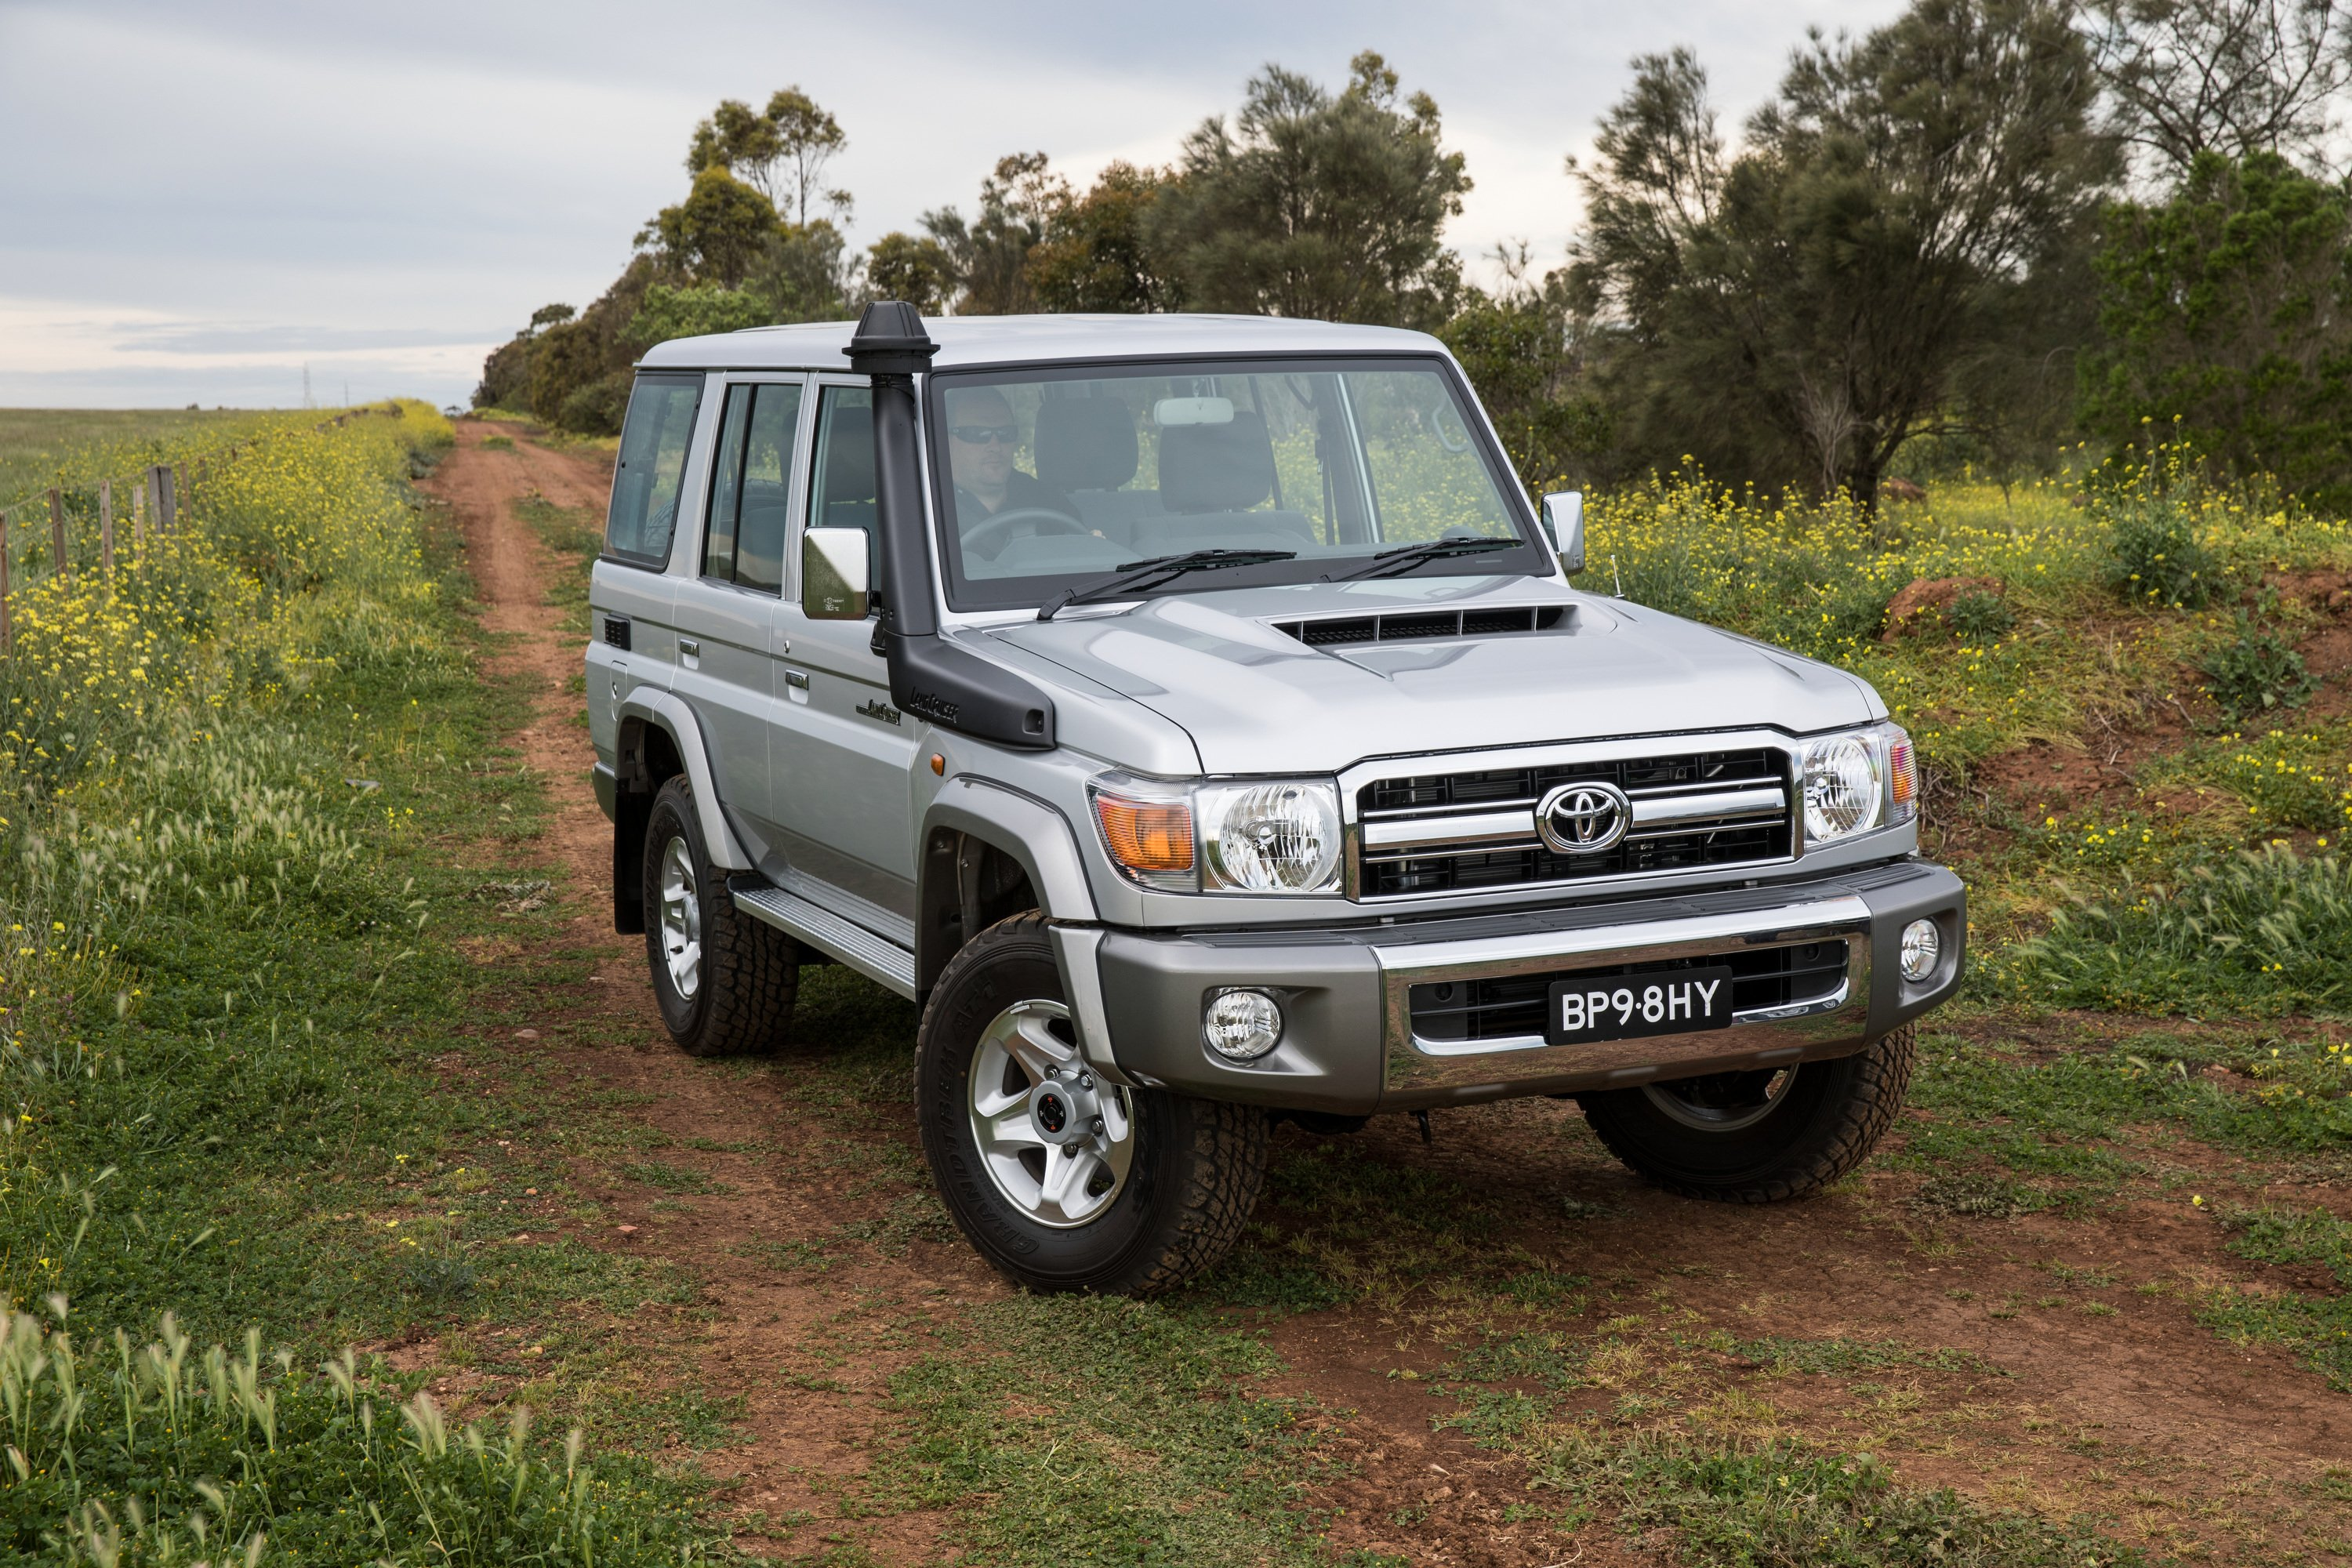 Toyota Land Cruiser 70 >> 2017 Toyota LandCruiser 70 Series Review - photos | CarAdvice